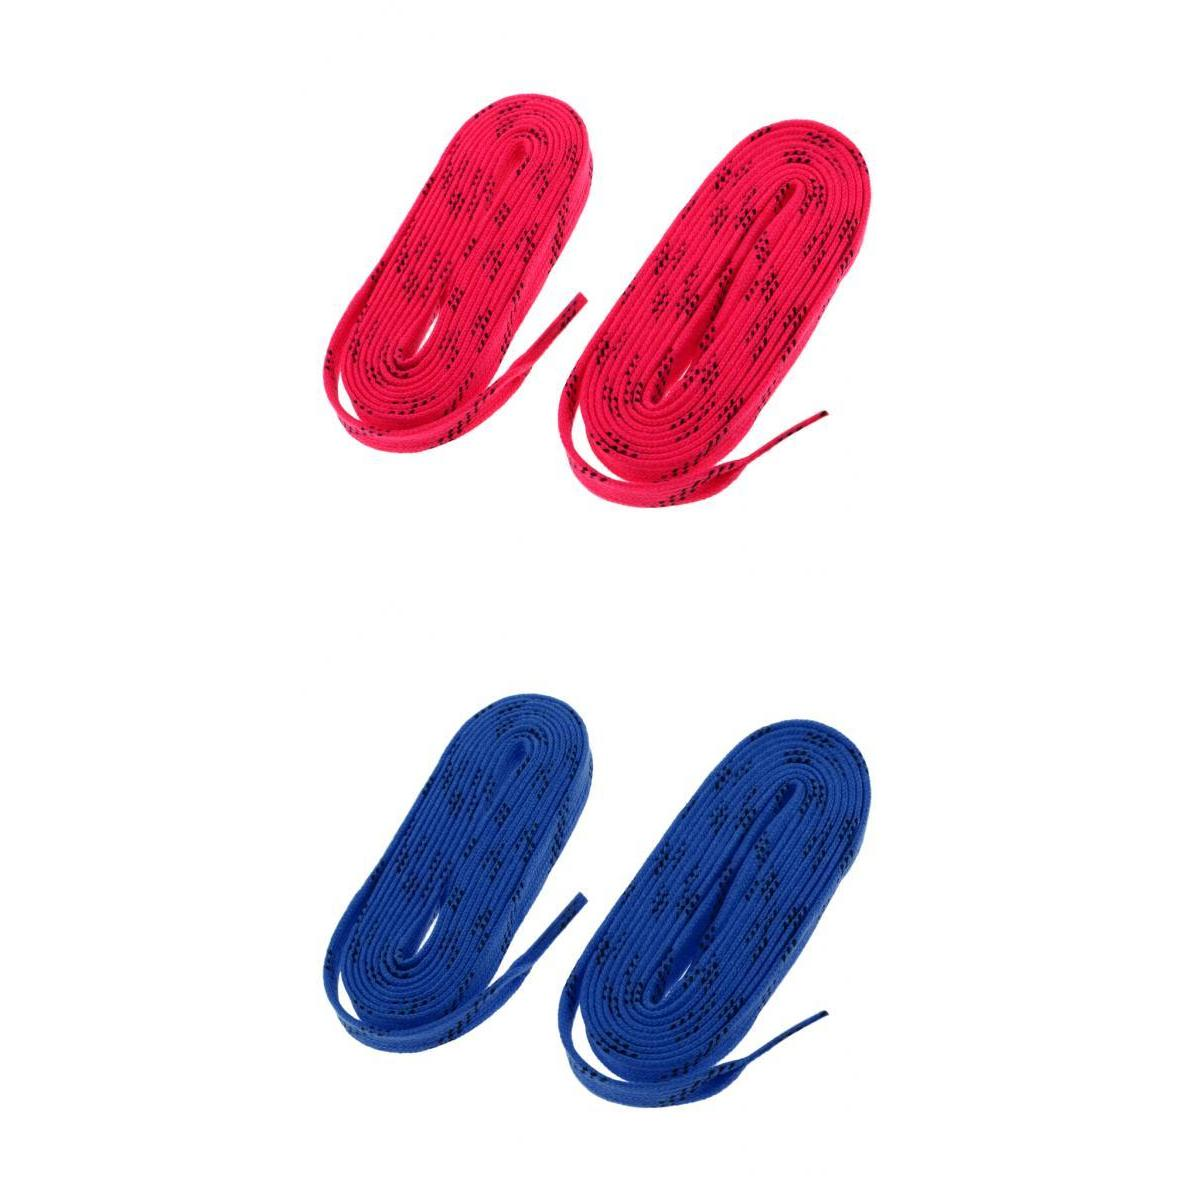 2 Pairs Ice Hockey Skate Flat Shoe Laces Shoelaces Replacement Red Blue